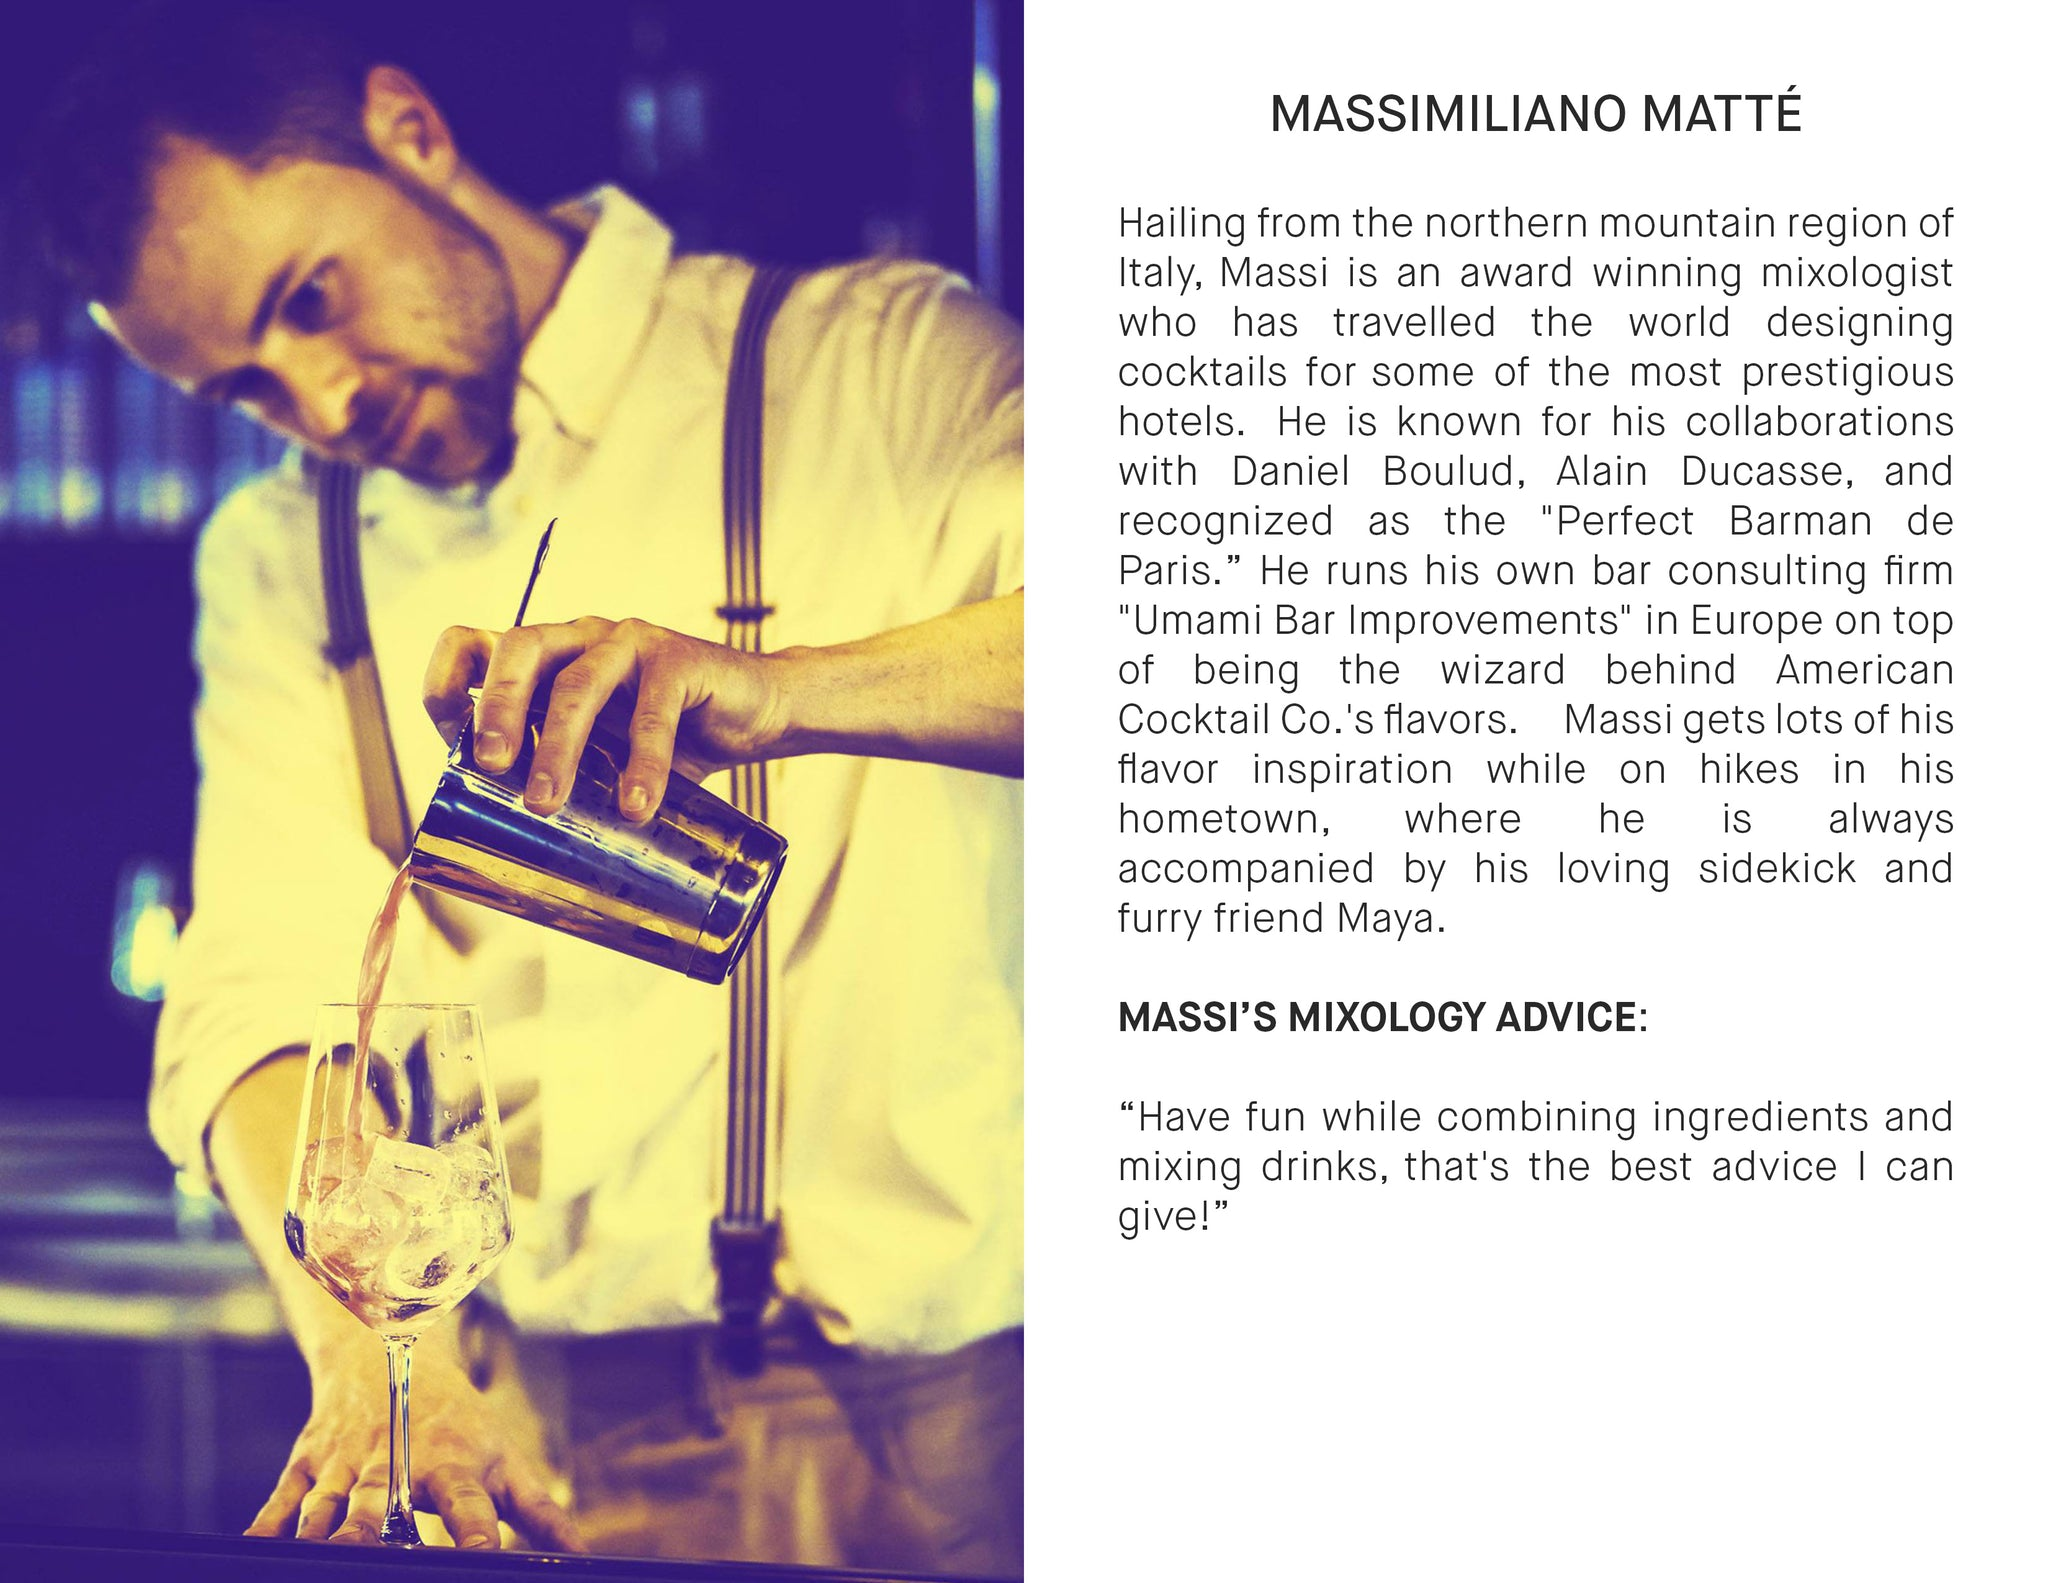 massimiliano matte, mixologist, craft cocktail